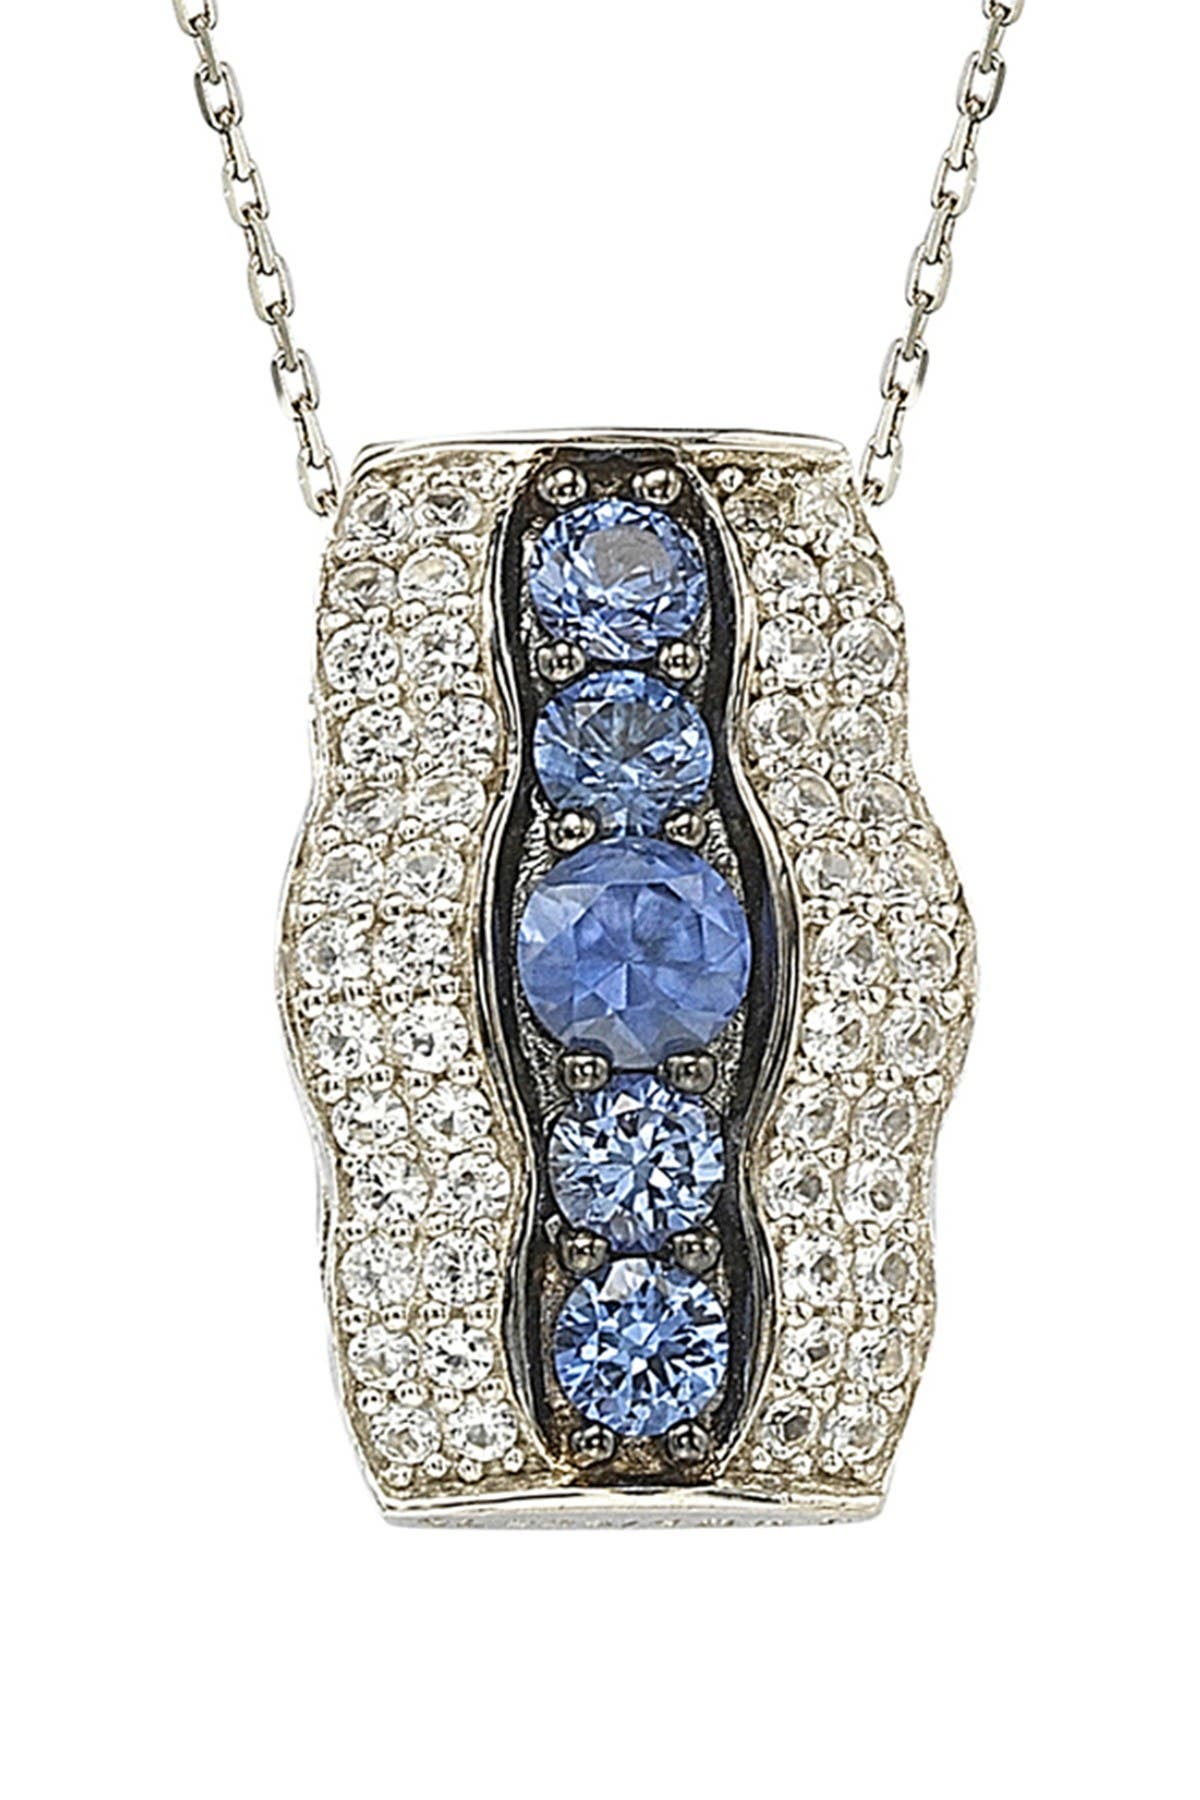 Image of Suzy Levian Two-Tone Blue Sapphire, Created White Sapphire, & Brown Diamond Pendant Necklace